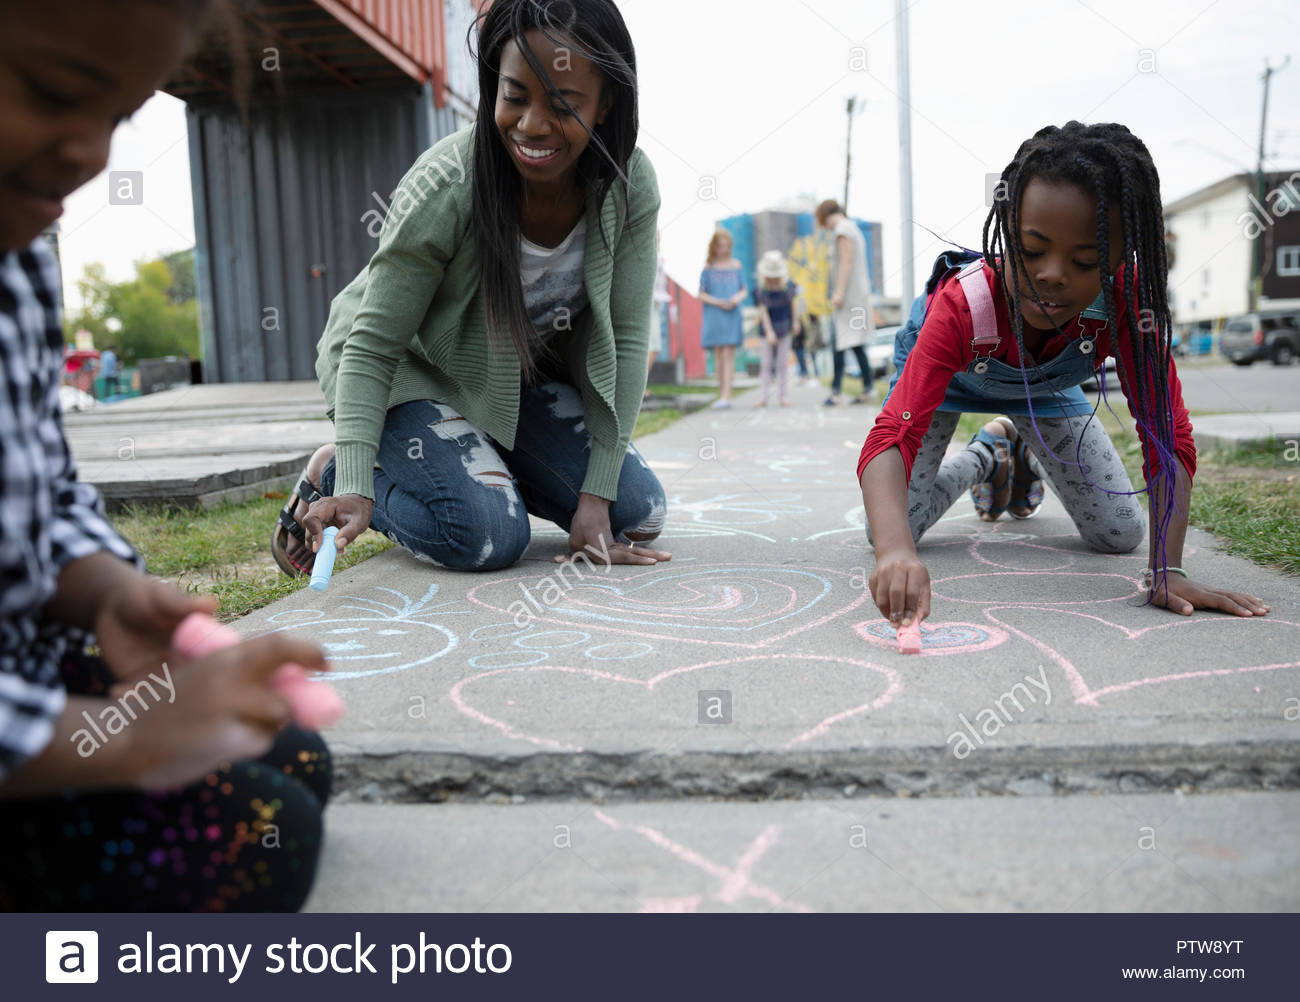 Mother and daughters coloring with sidewalk chalk - Stock Image